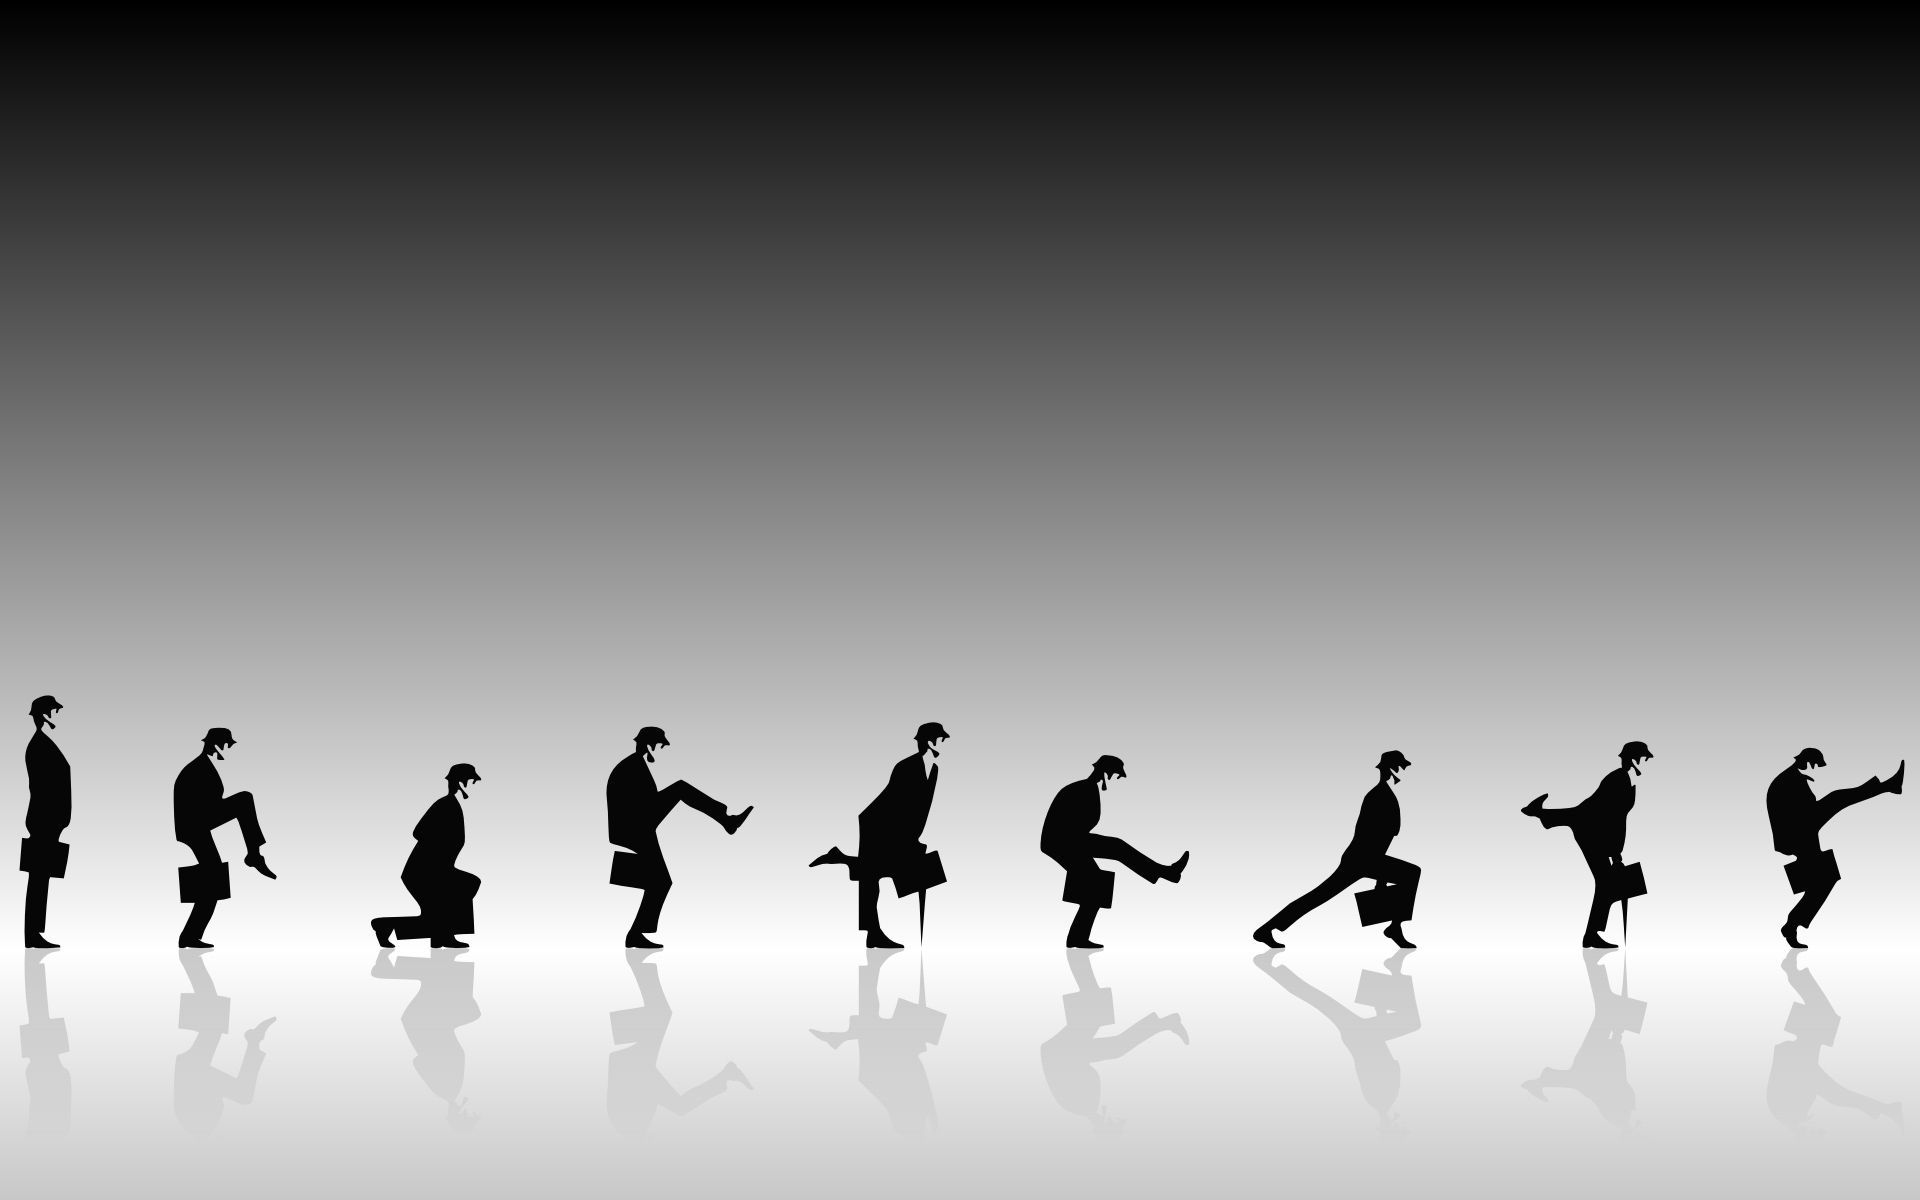 The ministry of silly walks monty python wallpaper 13604665